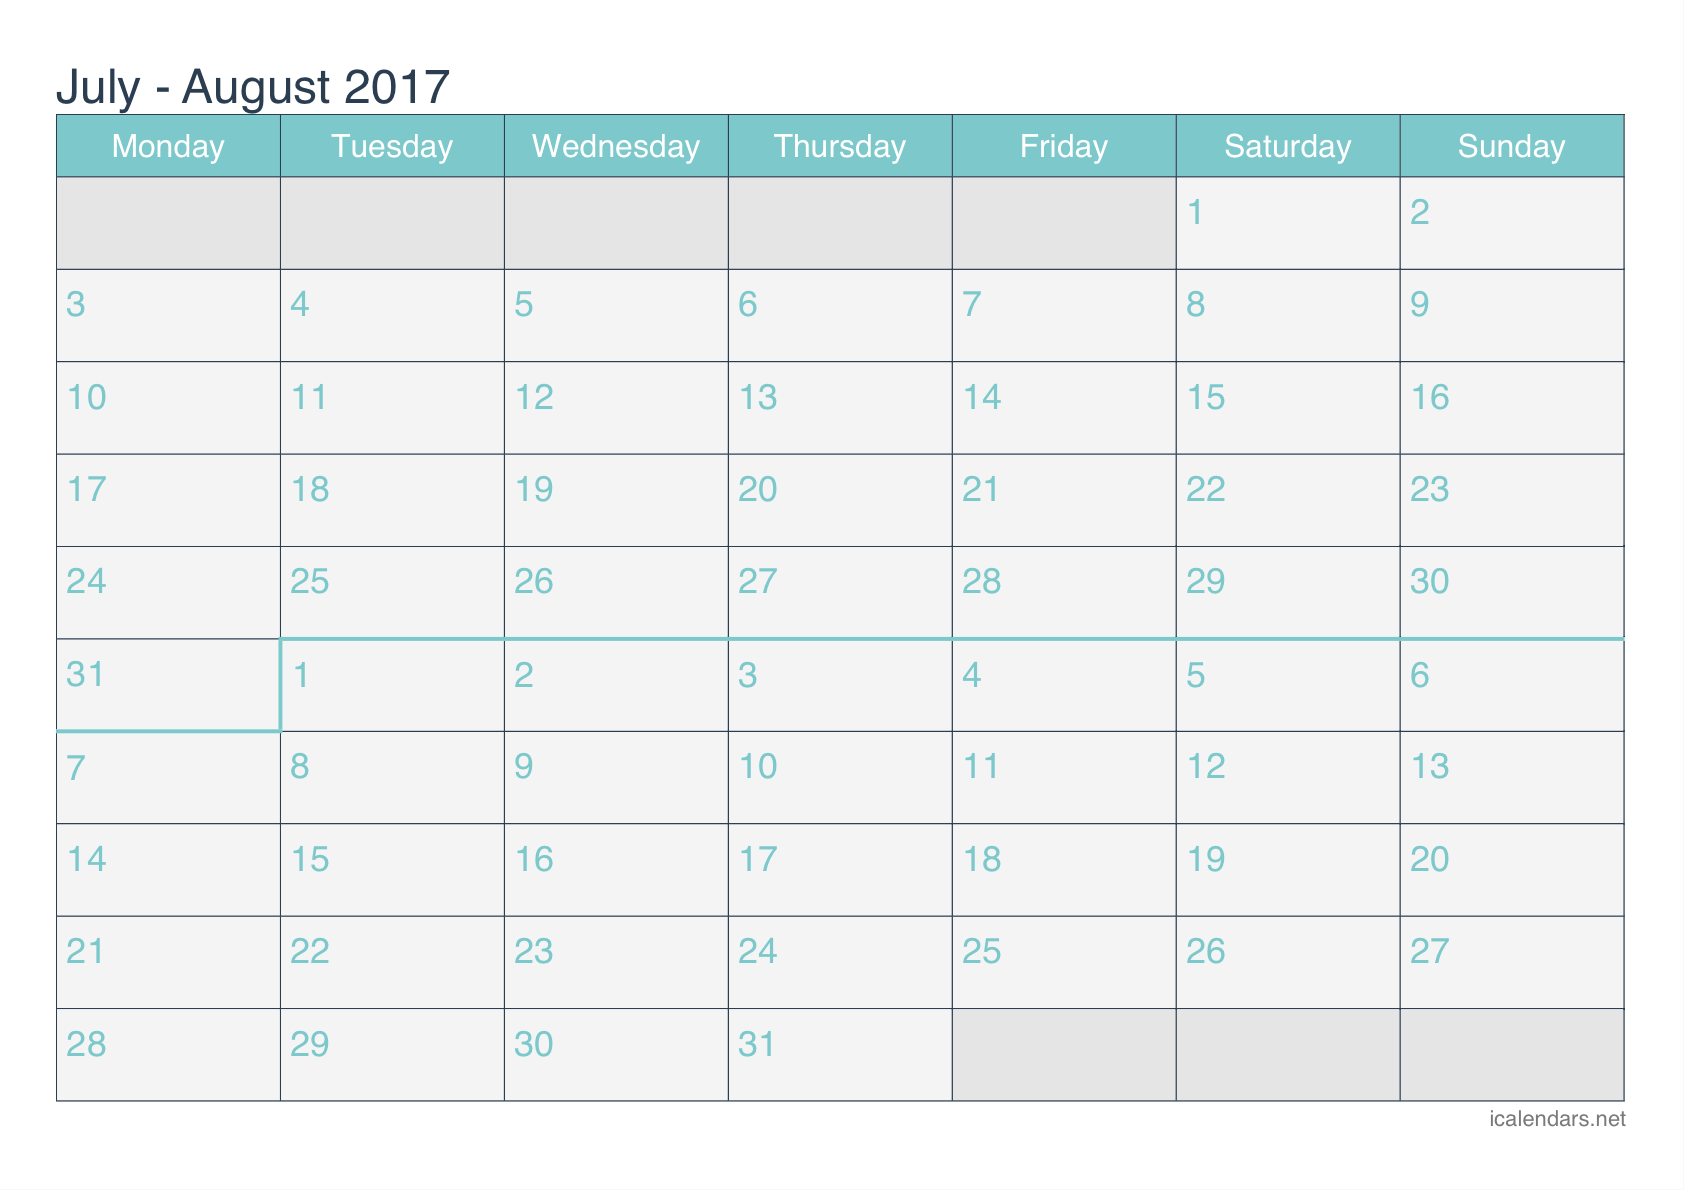 July and August 2017 Printable Calendar - icalendars.net